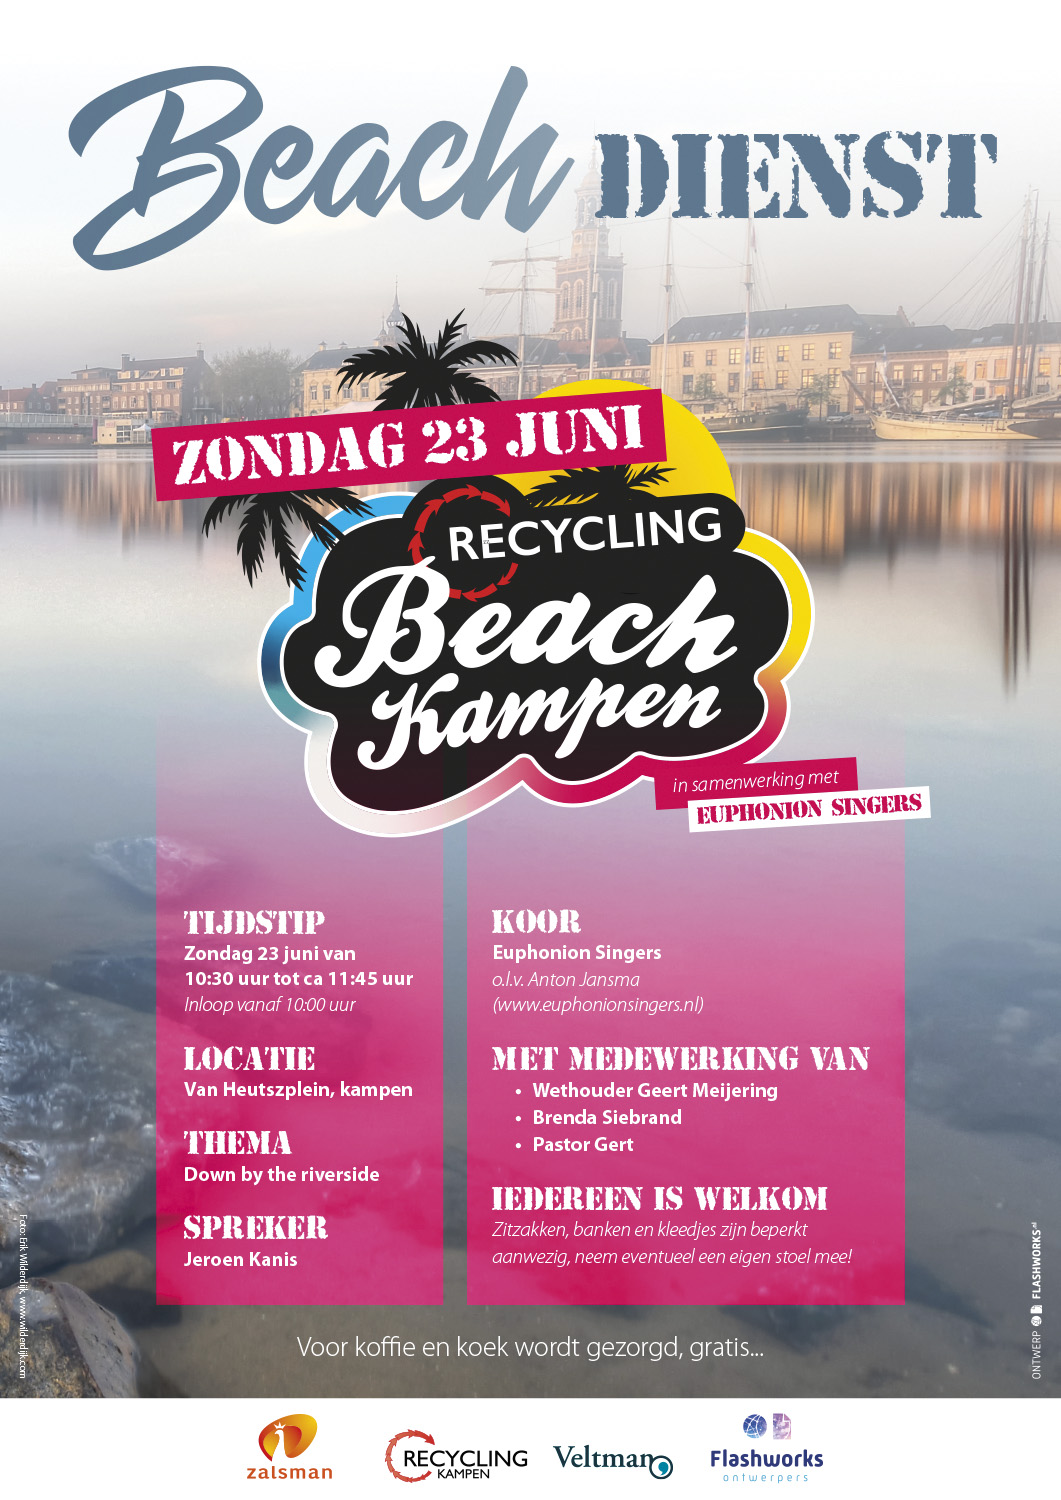 Beachdienst Kampen 23 juni